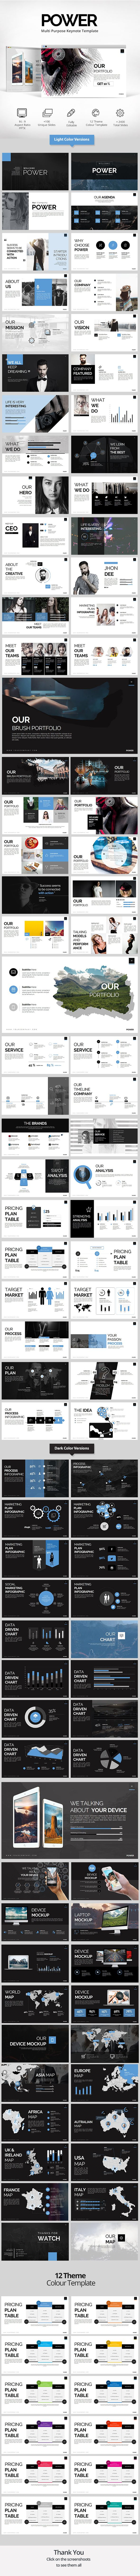 Power - Keynote Templates